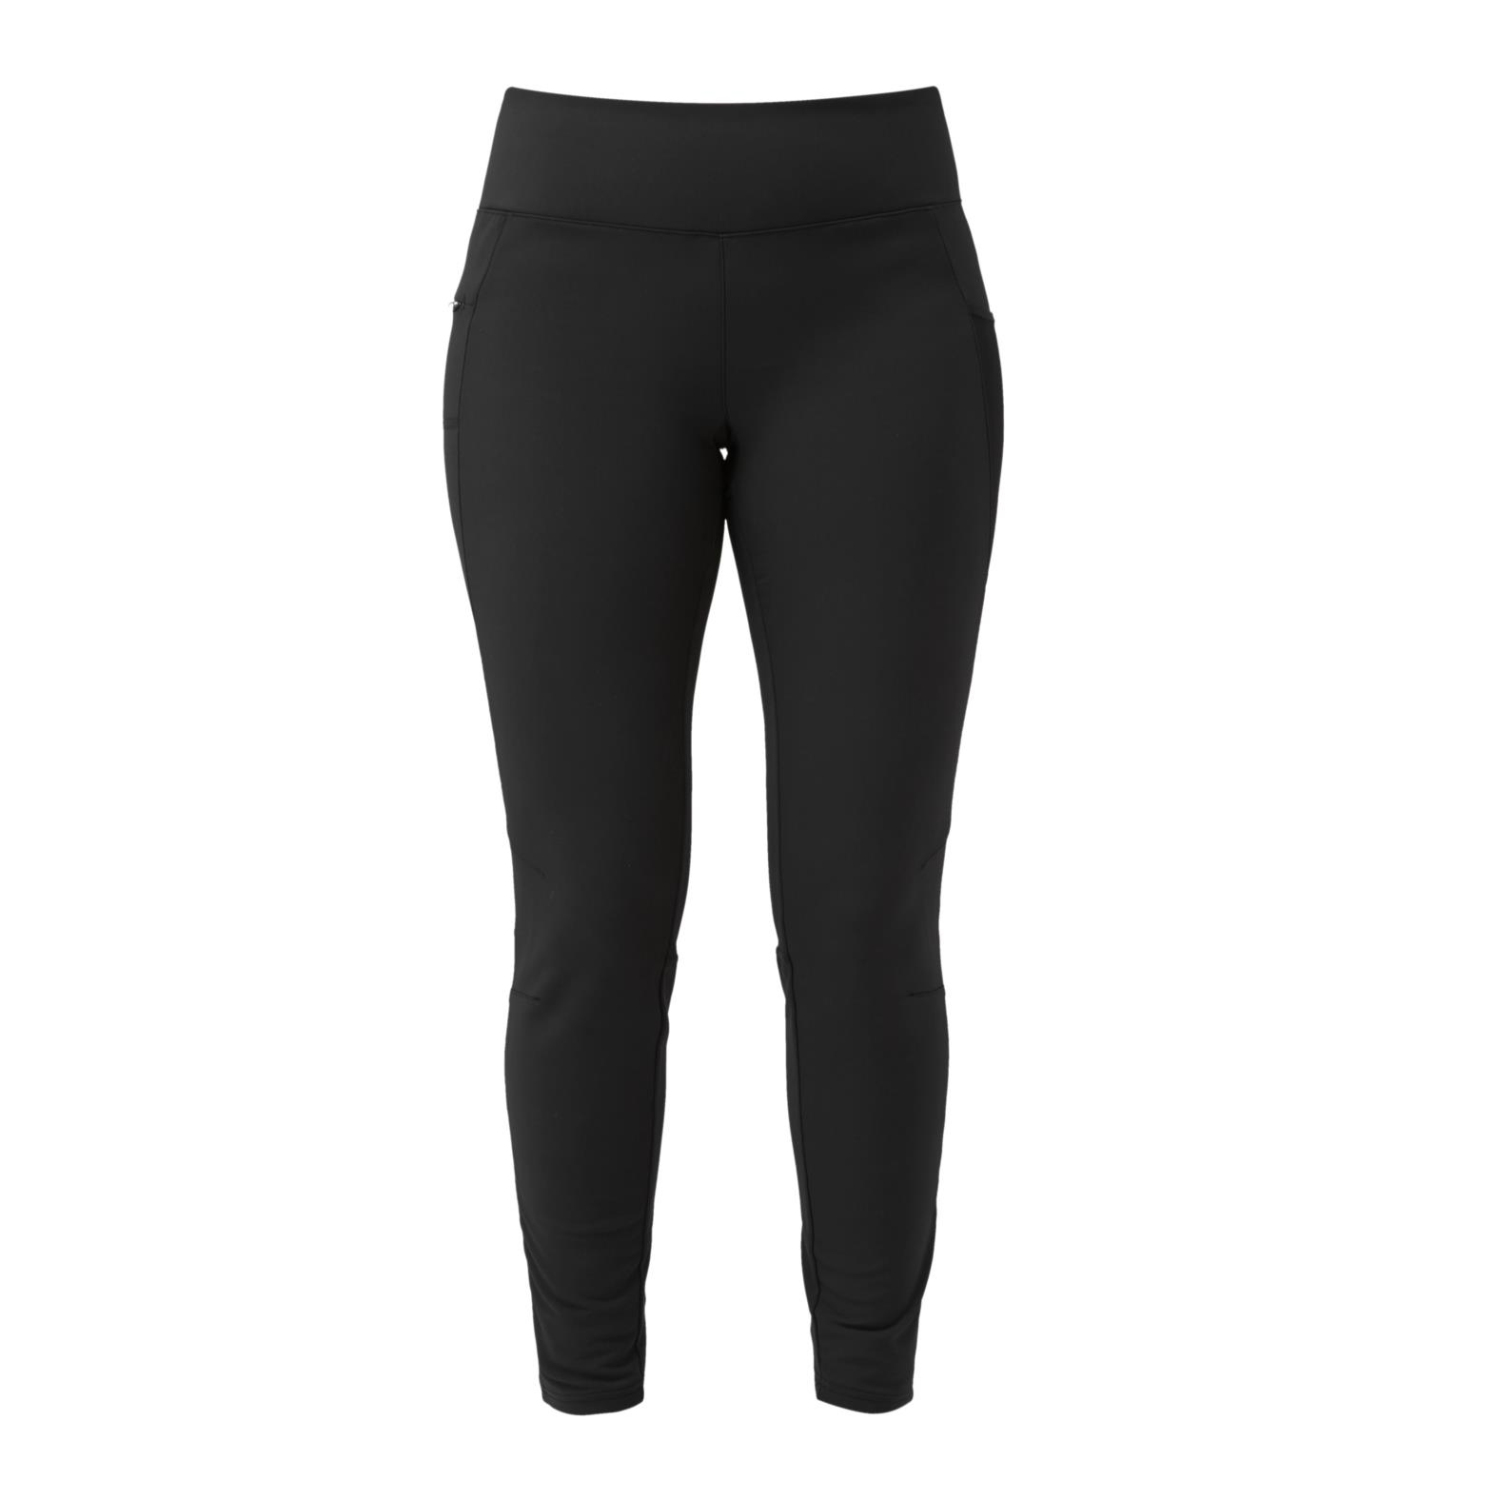 Mountain Equipment Sonica Tight Damen Leggings schwarz Gr. XL von Mountain Equipment